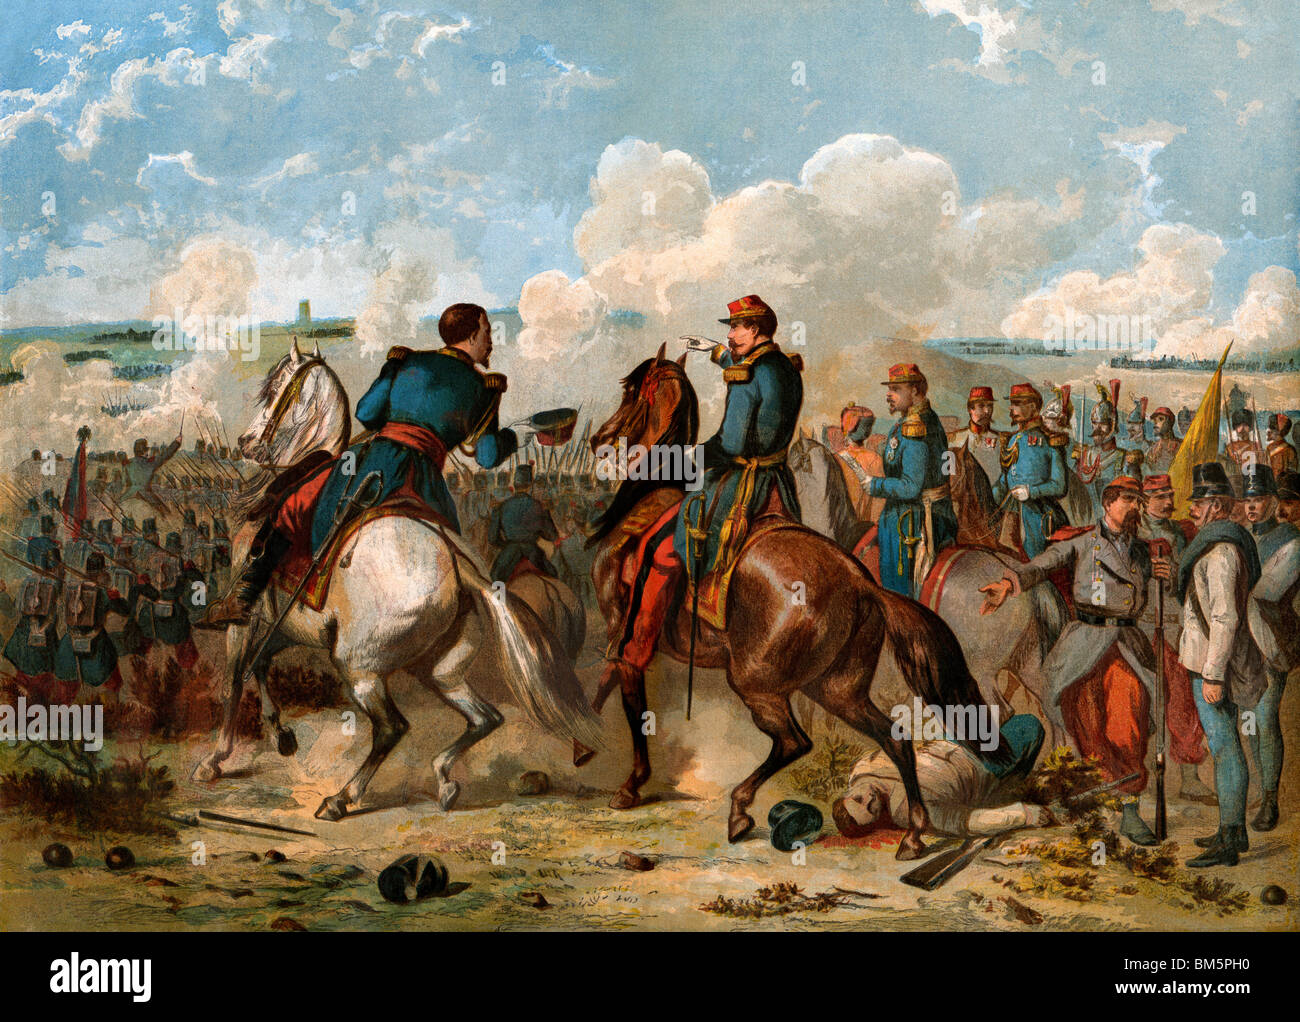 Napoleon III leading French and Sardinian forces against the Austrians at Solferino, Italy, 1859. Color lithograph - Stock Image